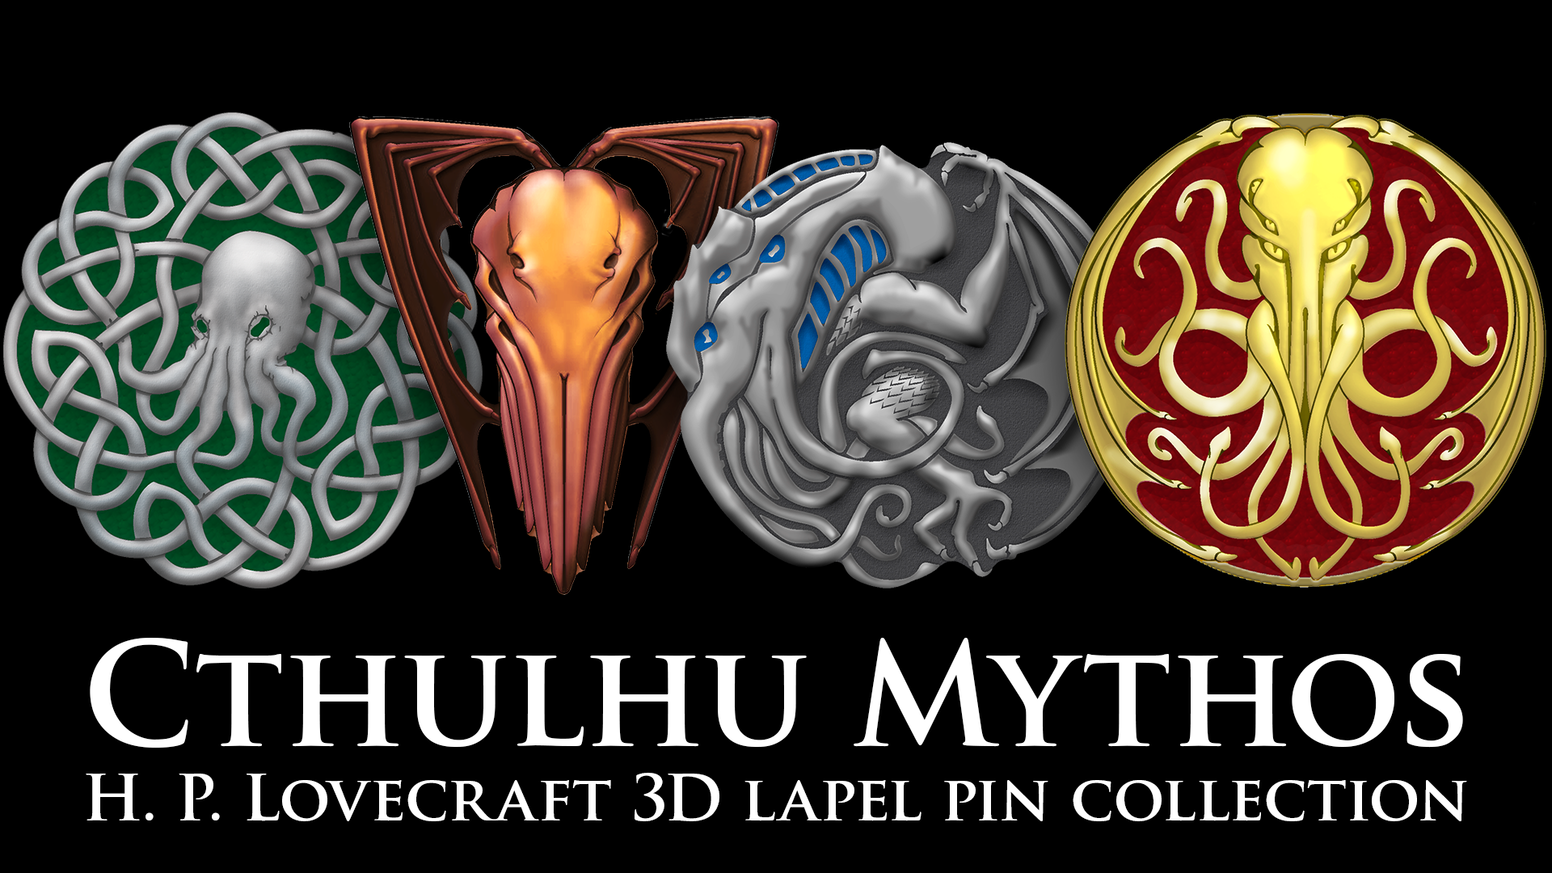 Cthulhu Mythos Lovecraft 3D Metal & Enamel Pin Collection by